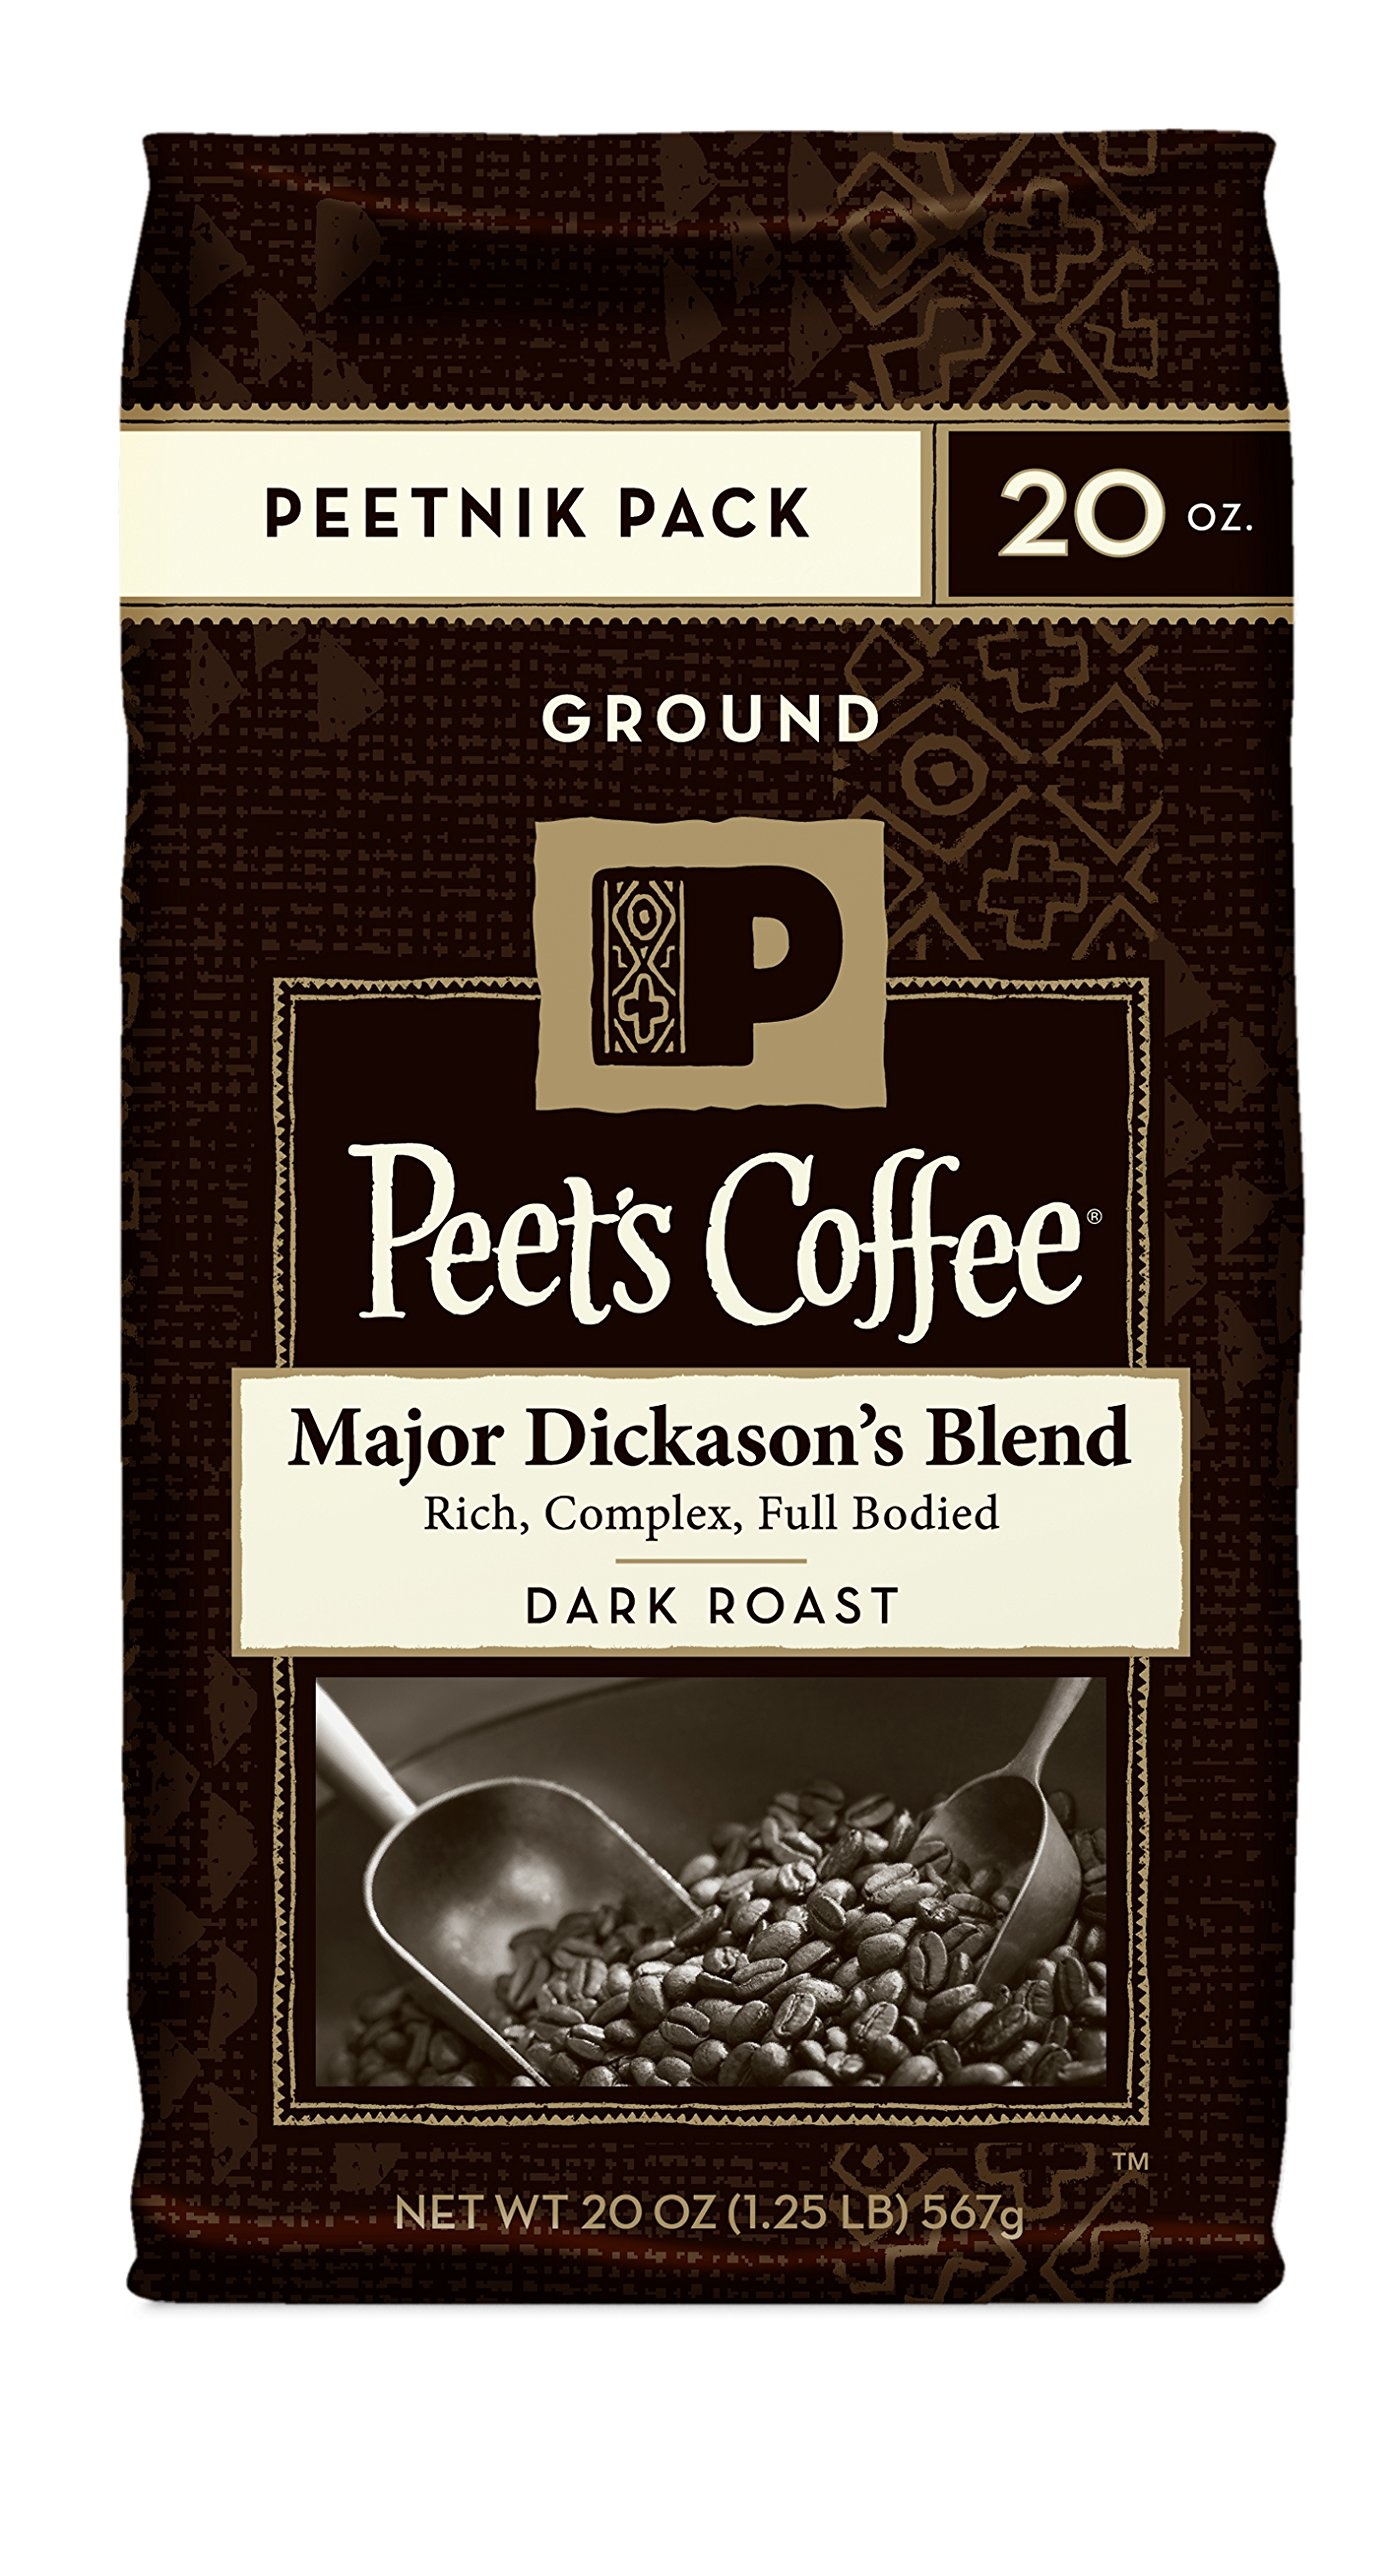 Peet's Coffee & Tea Ground Major Dickason's Blend 20 Ounce 4